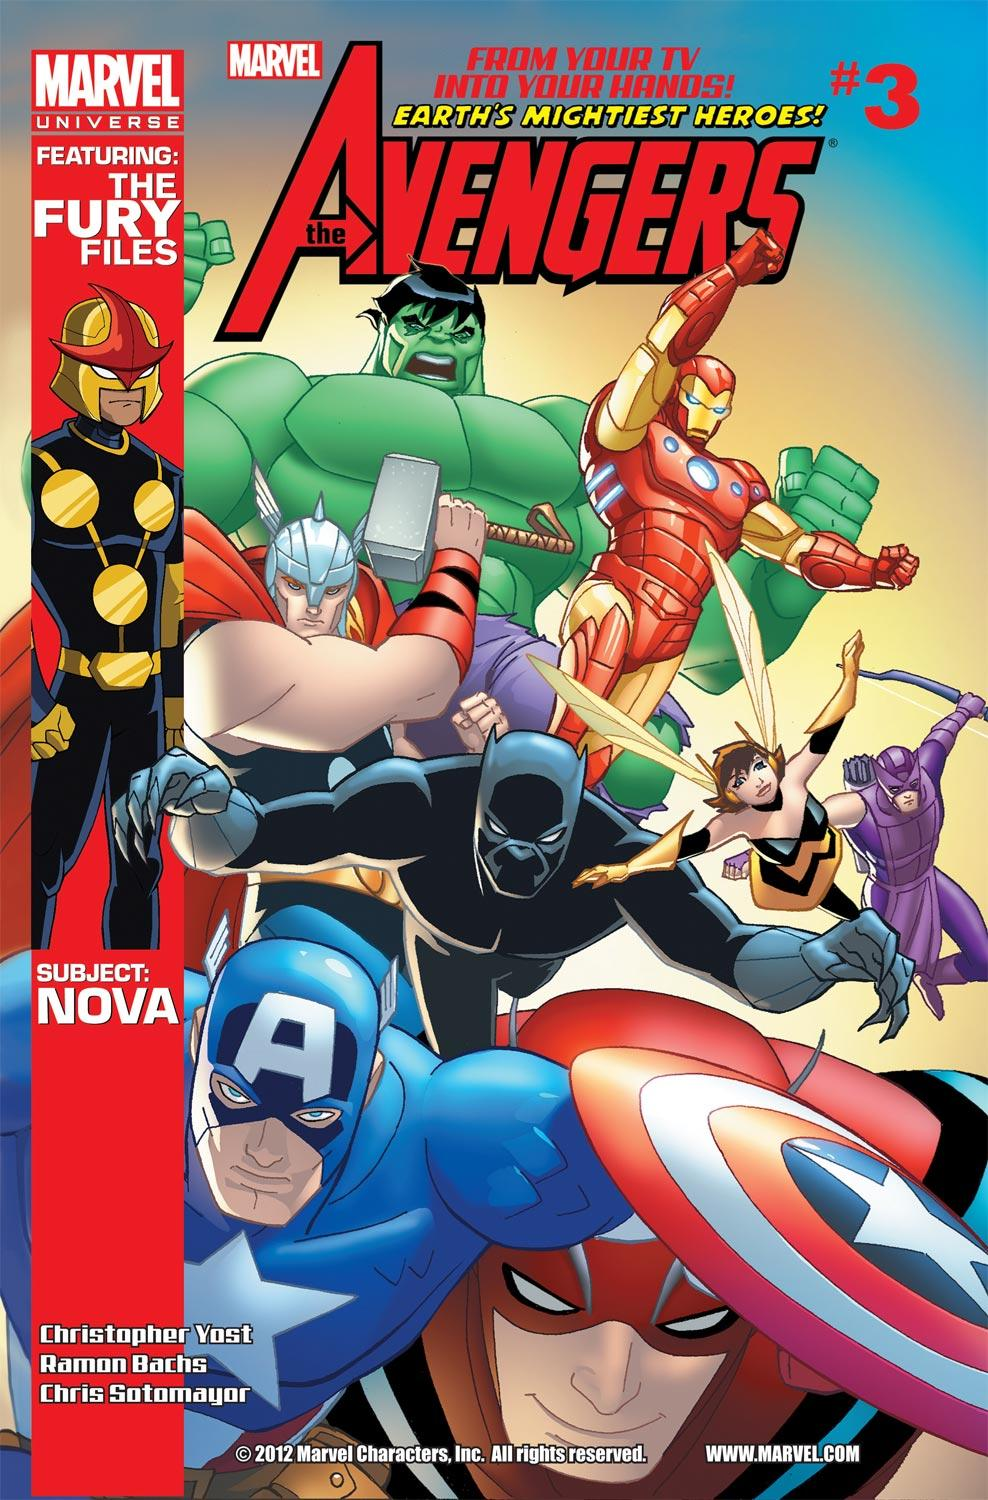 Marvel Universe Avengers: Earth's Mightiest Heroes (2012) #3